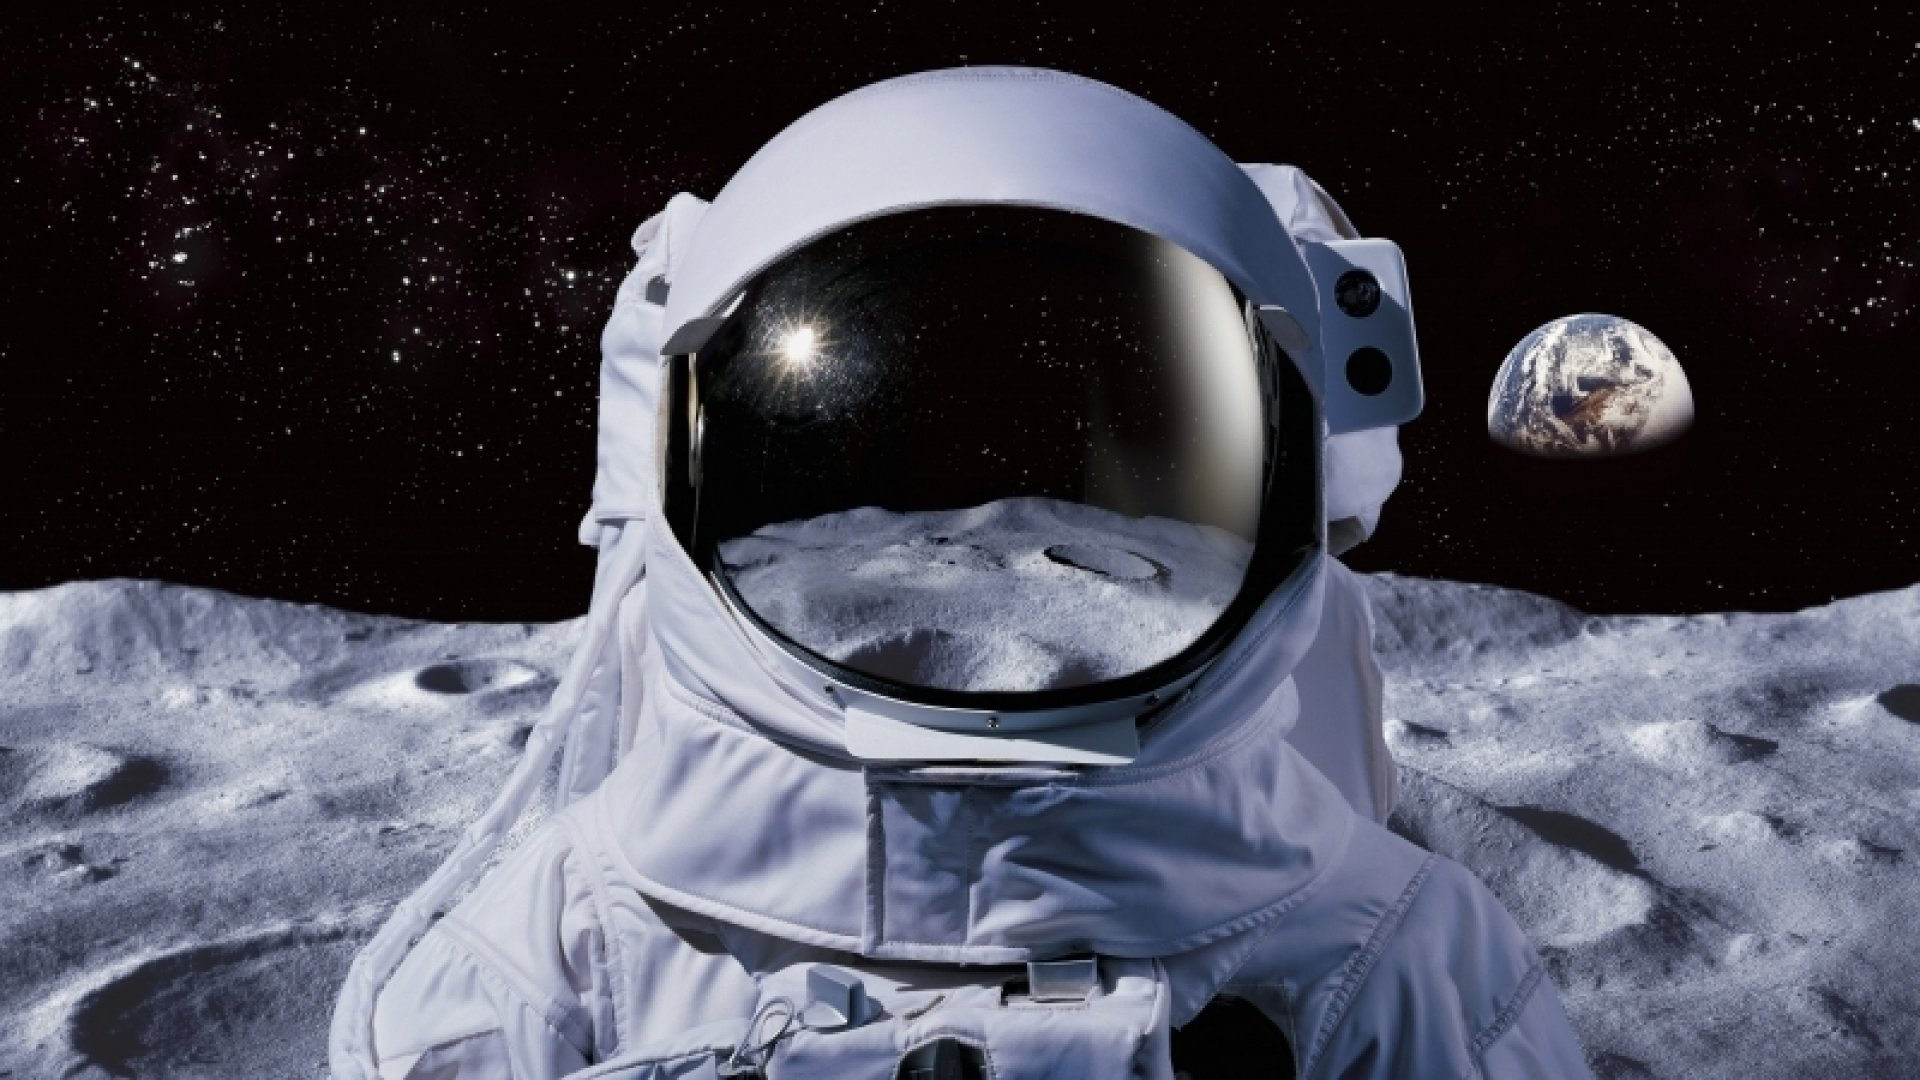 What I've Learned From Astronauts